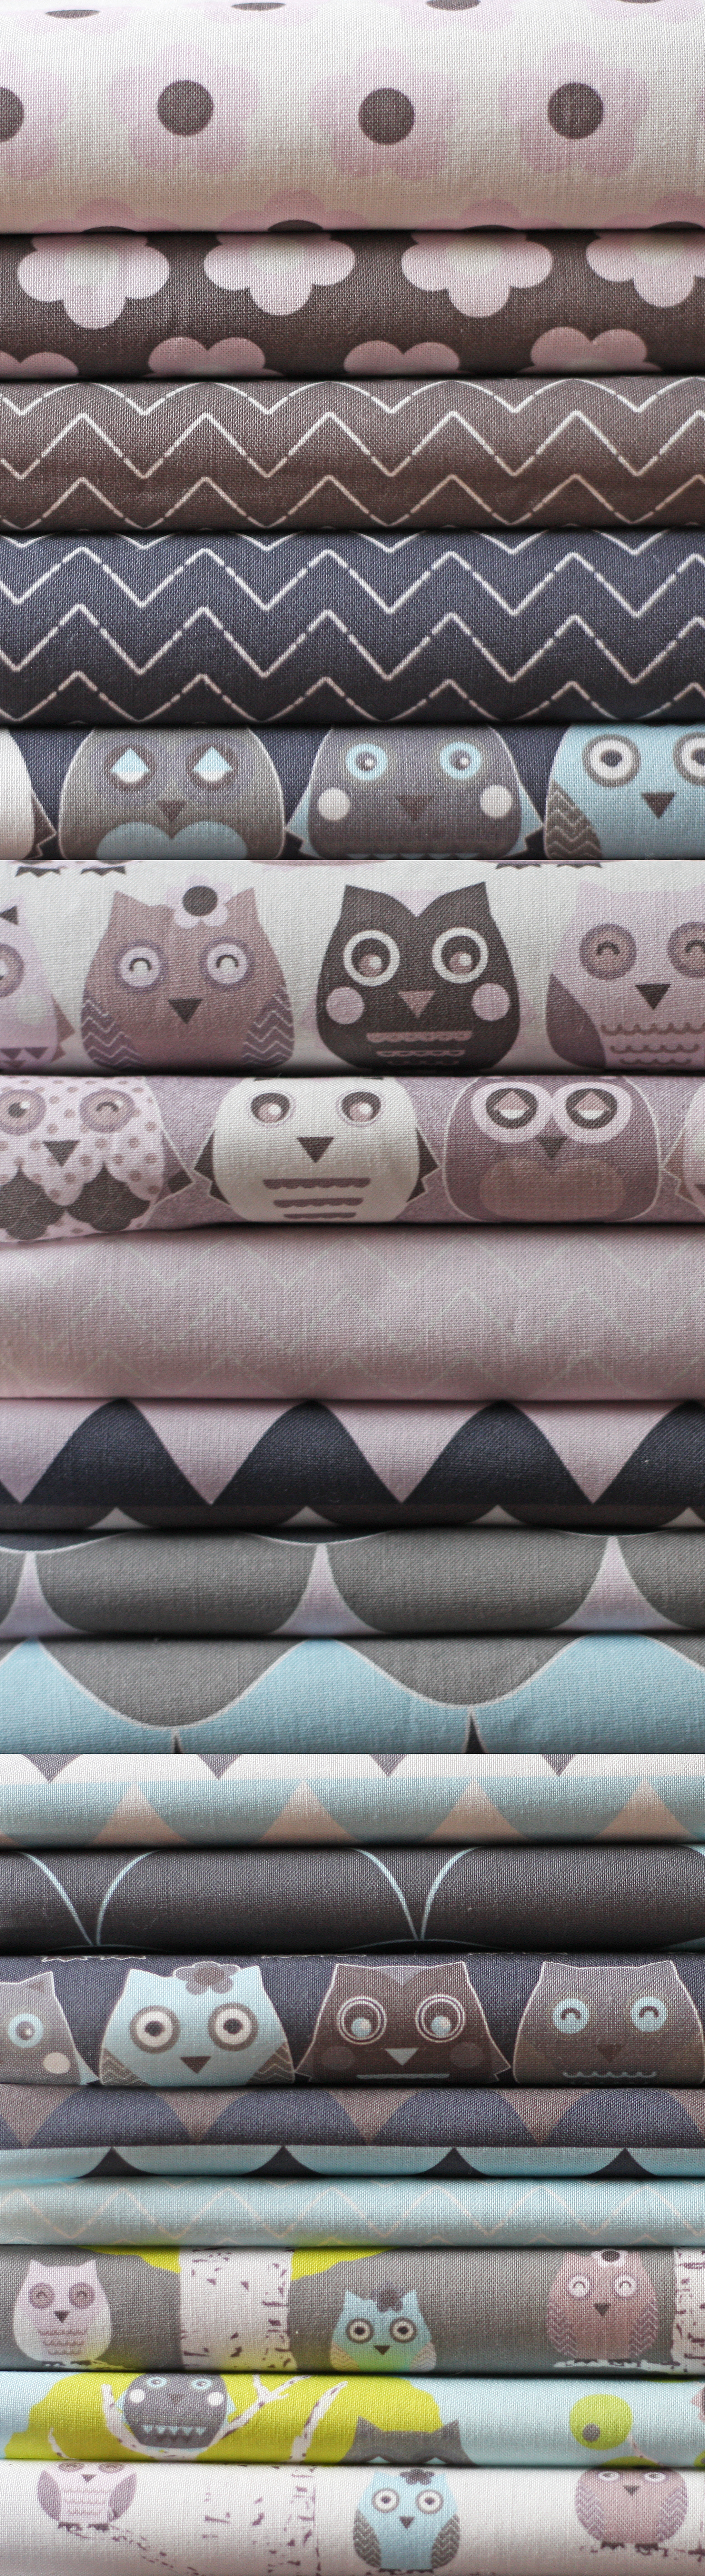 owls fabric pile